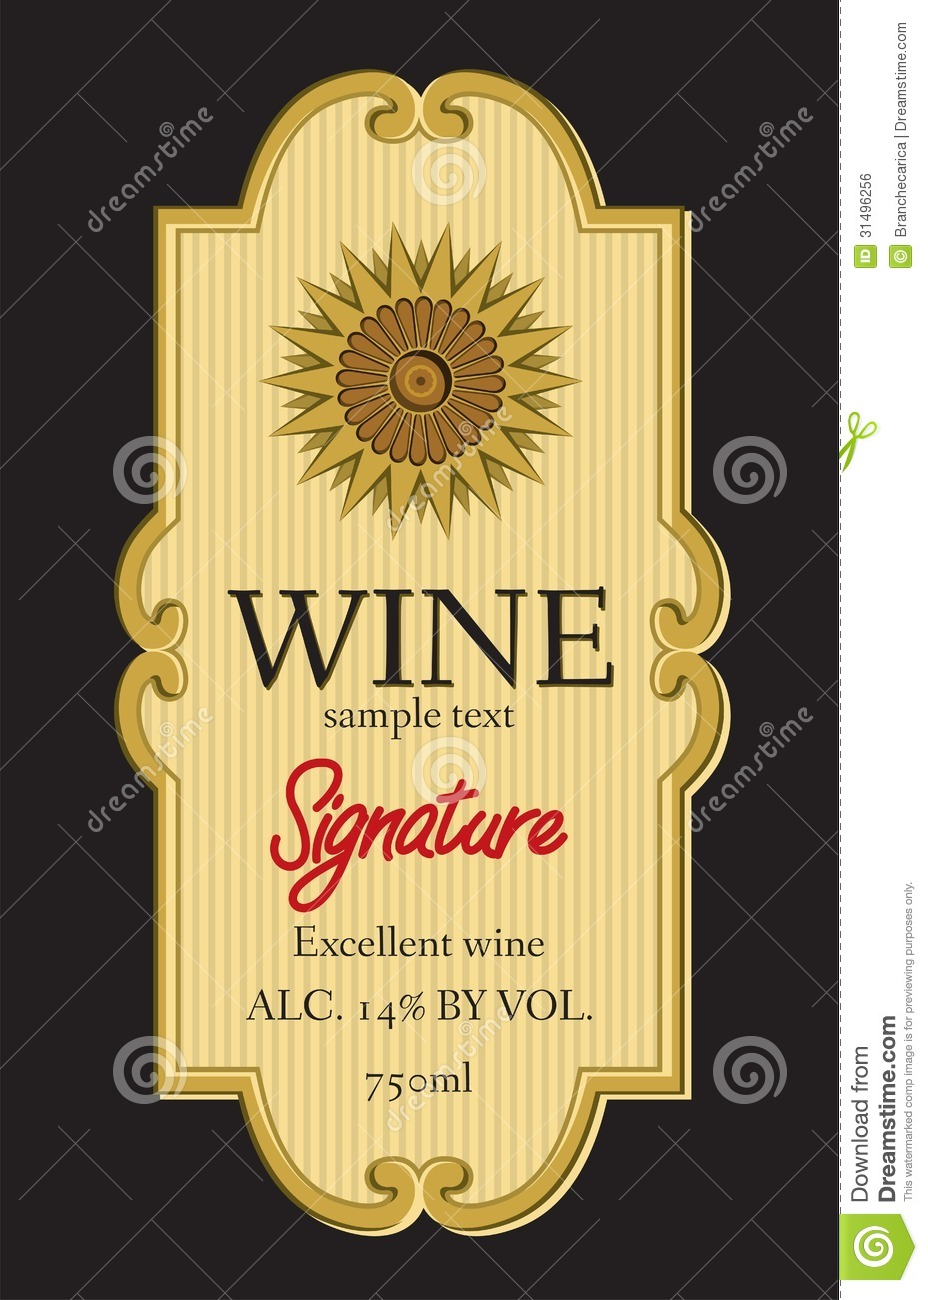 photograph regarding Free Printable Wine Bottle Label titled wine bottle label template -